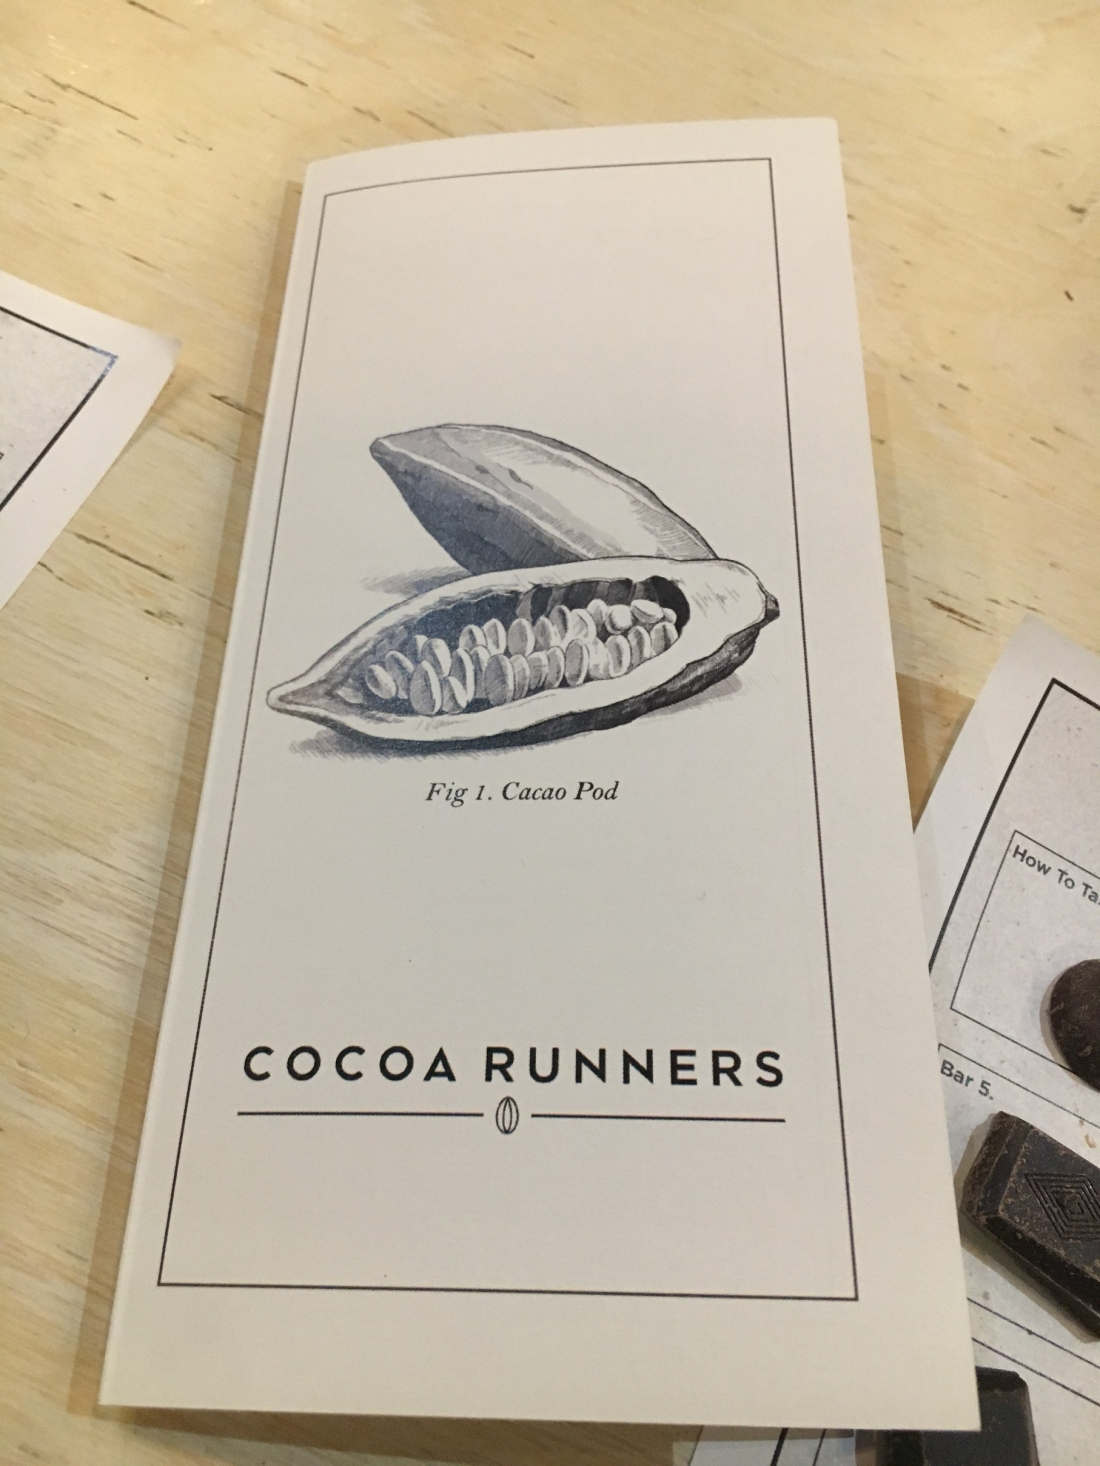 Out_of_office_cocoa_runners_cocoa_runners